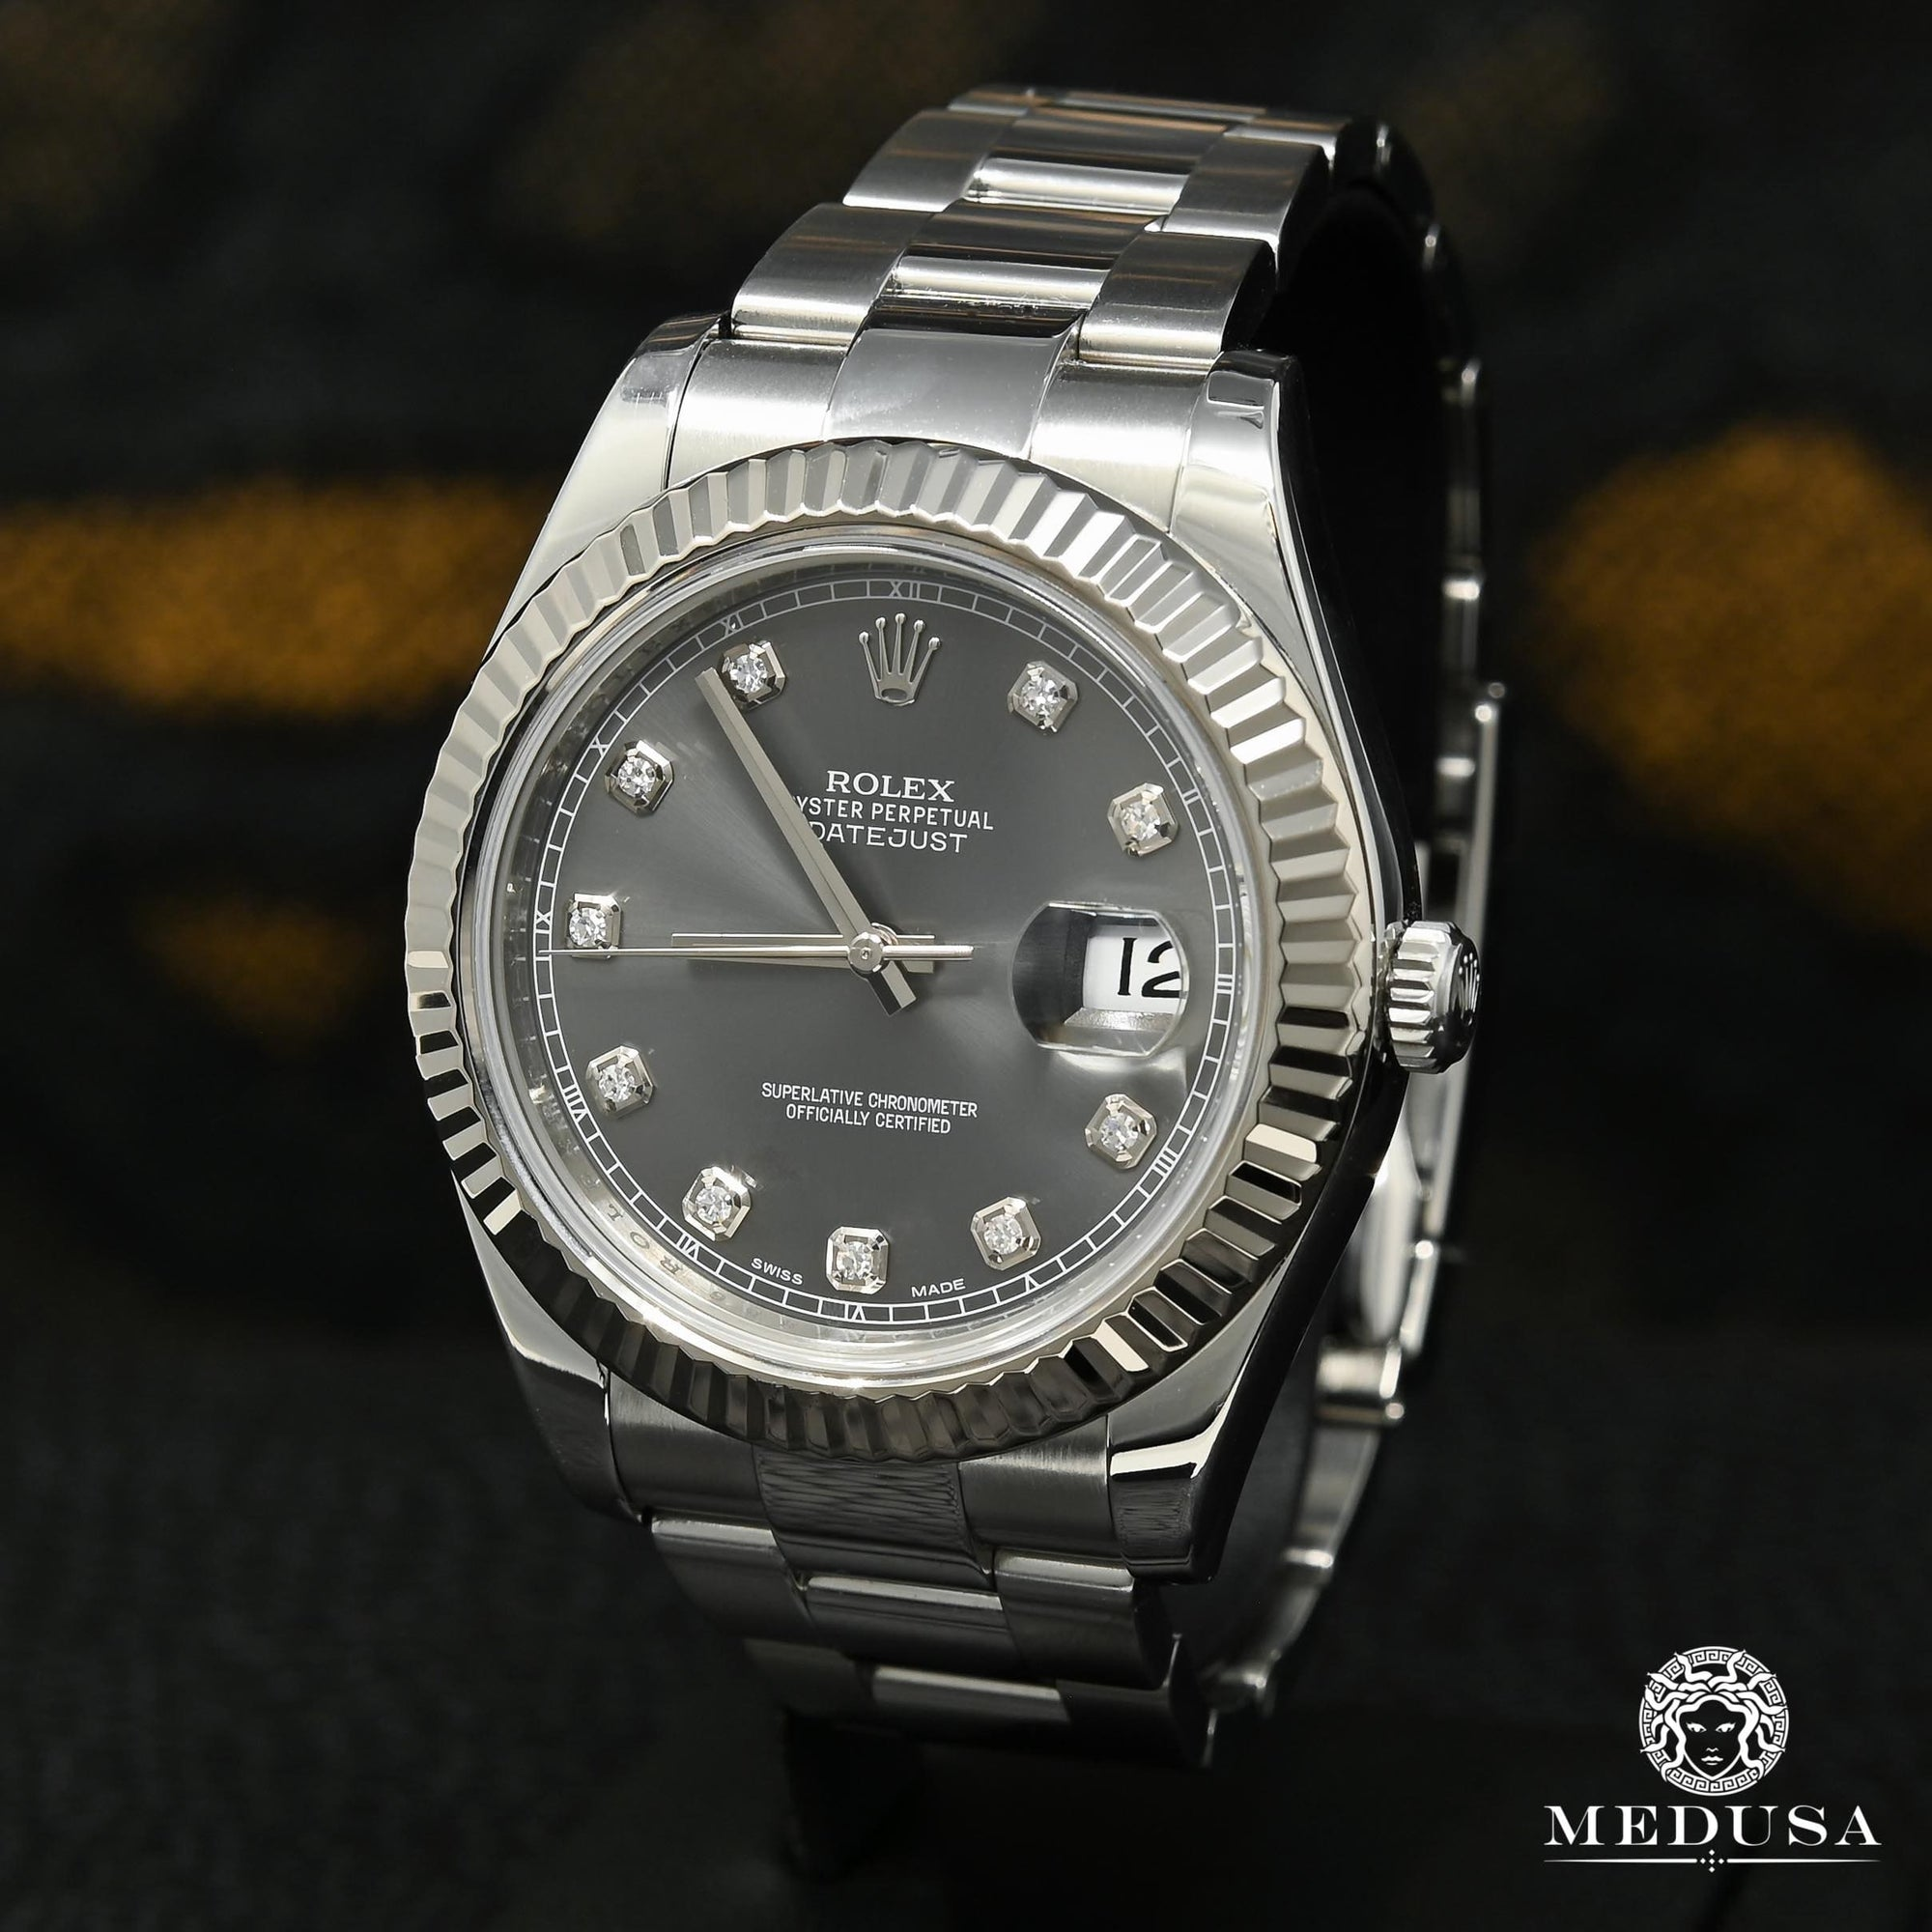 Rolex Datejust 41mm - Oyster Grey